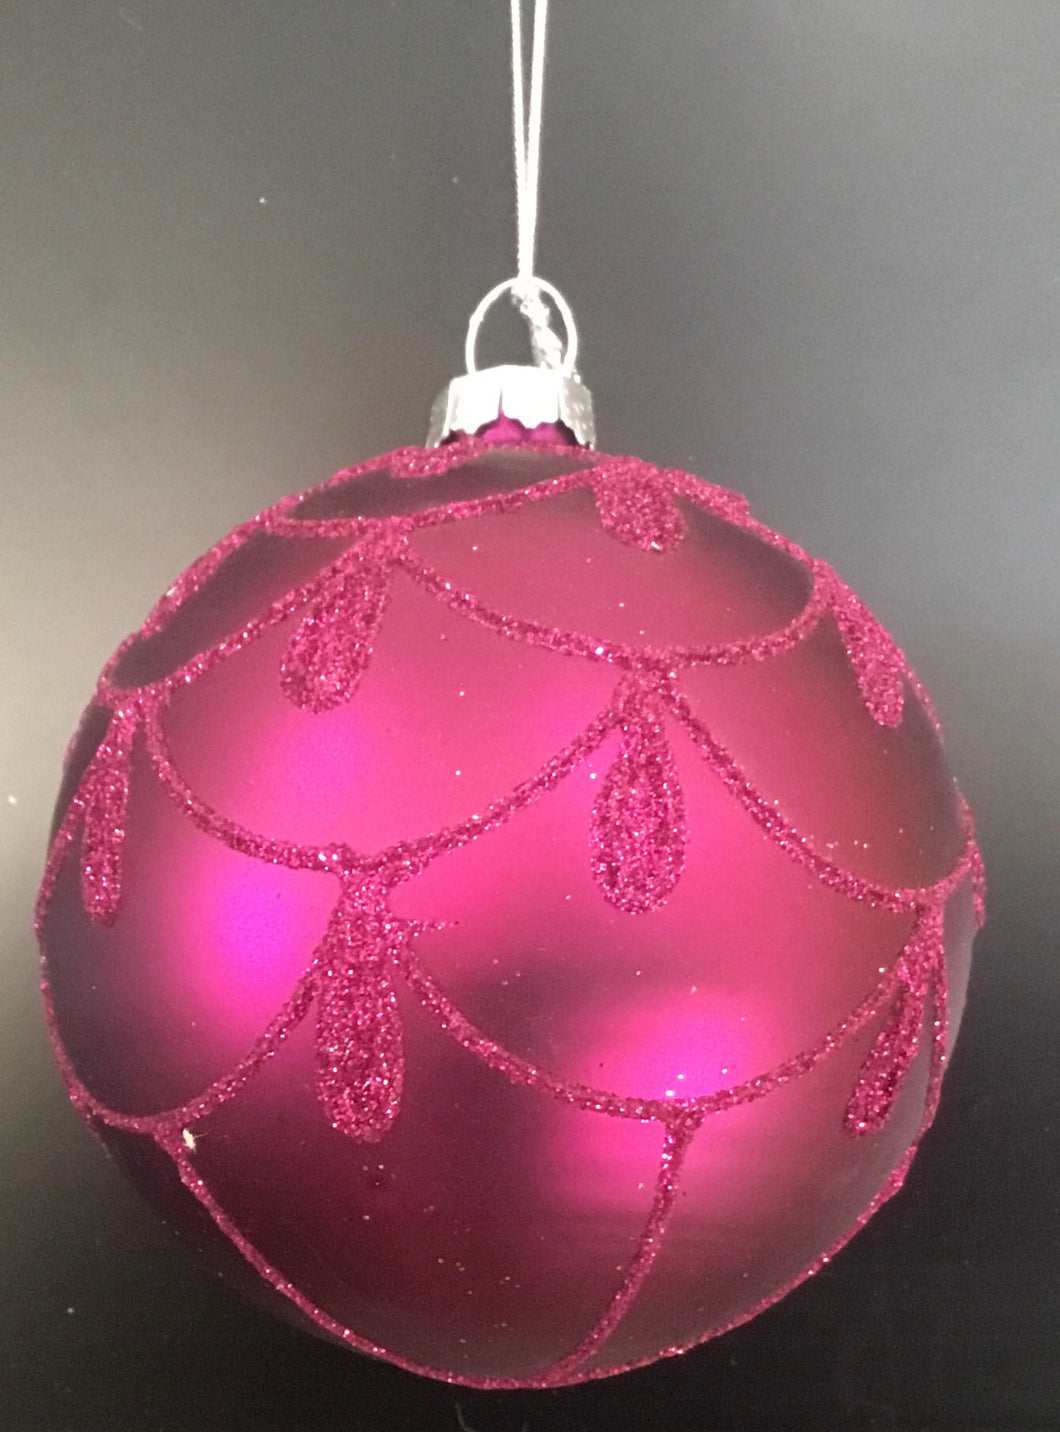 Frosted purple bauble with glitter garland pattern